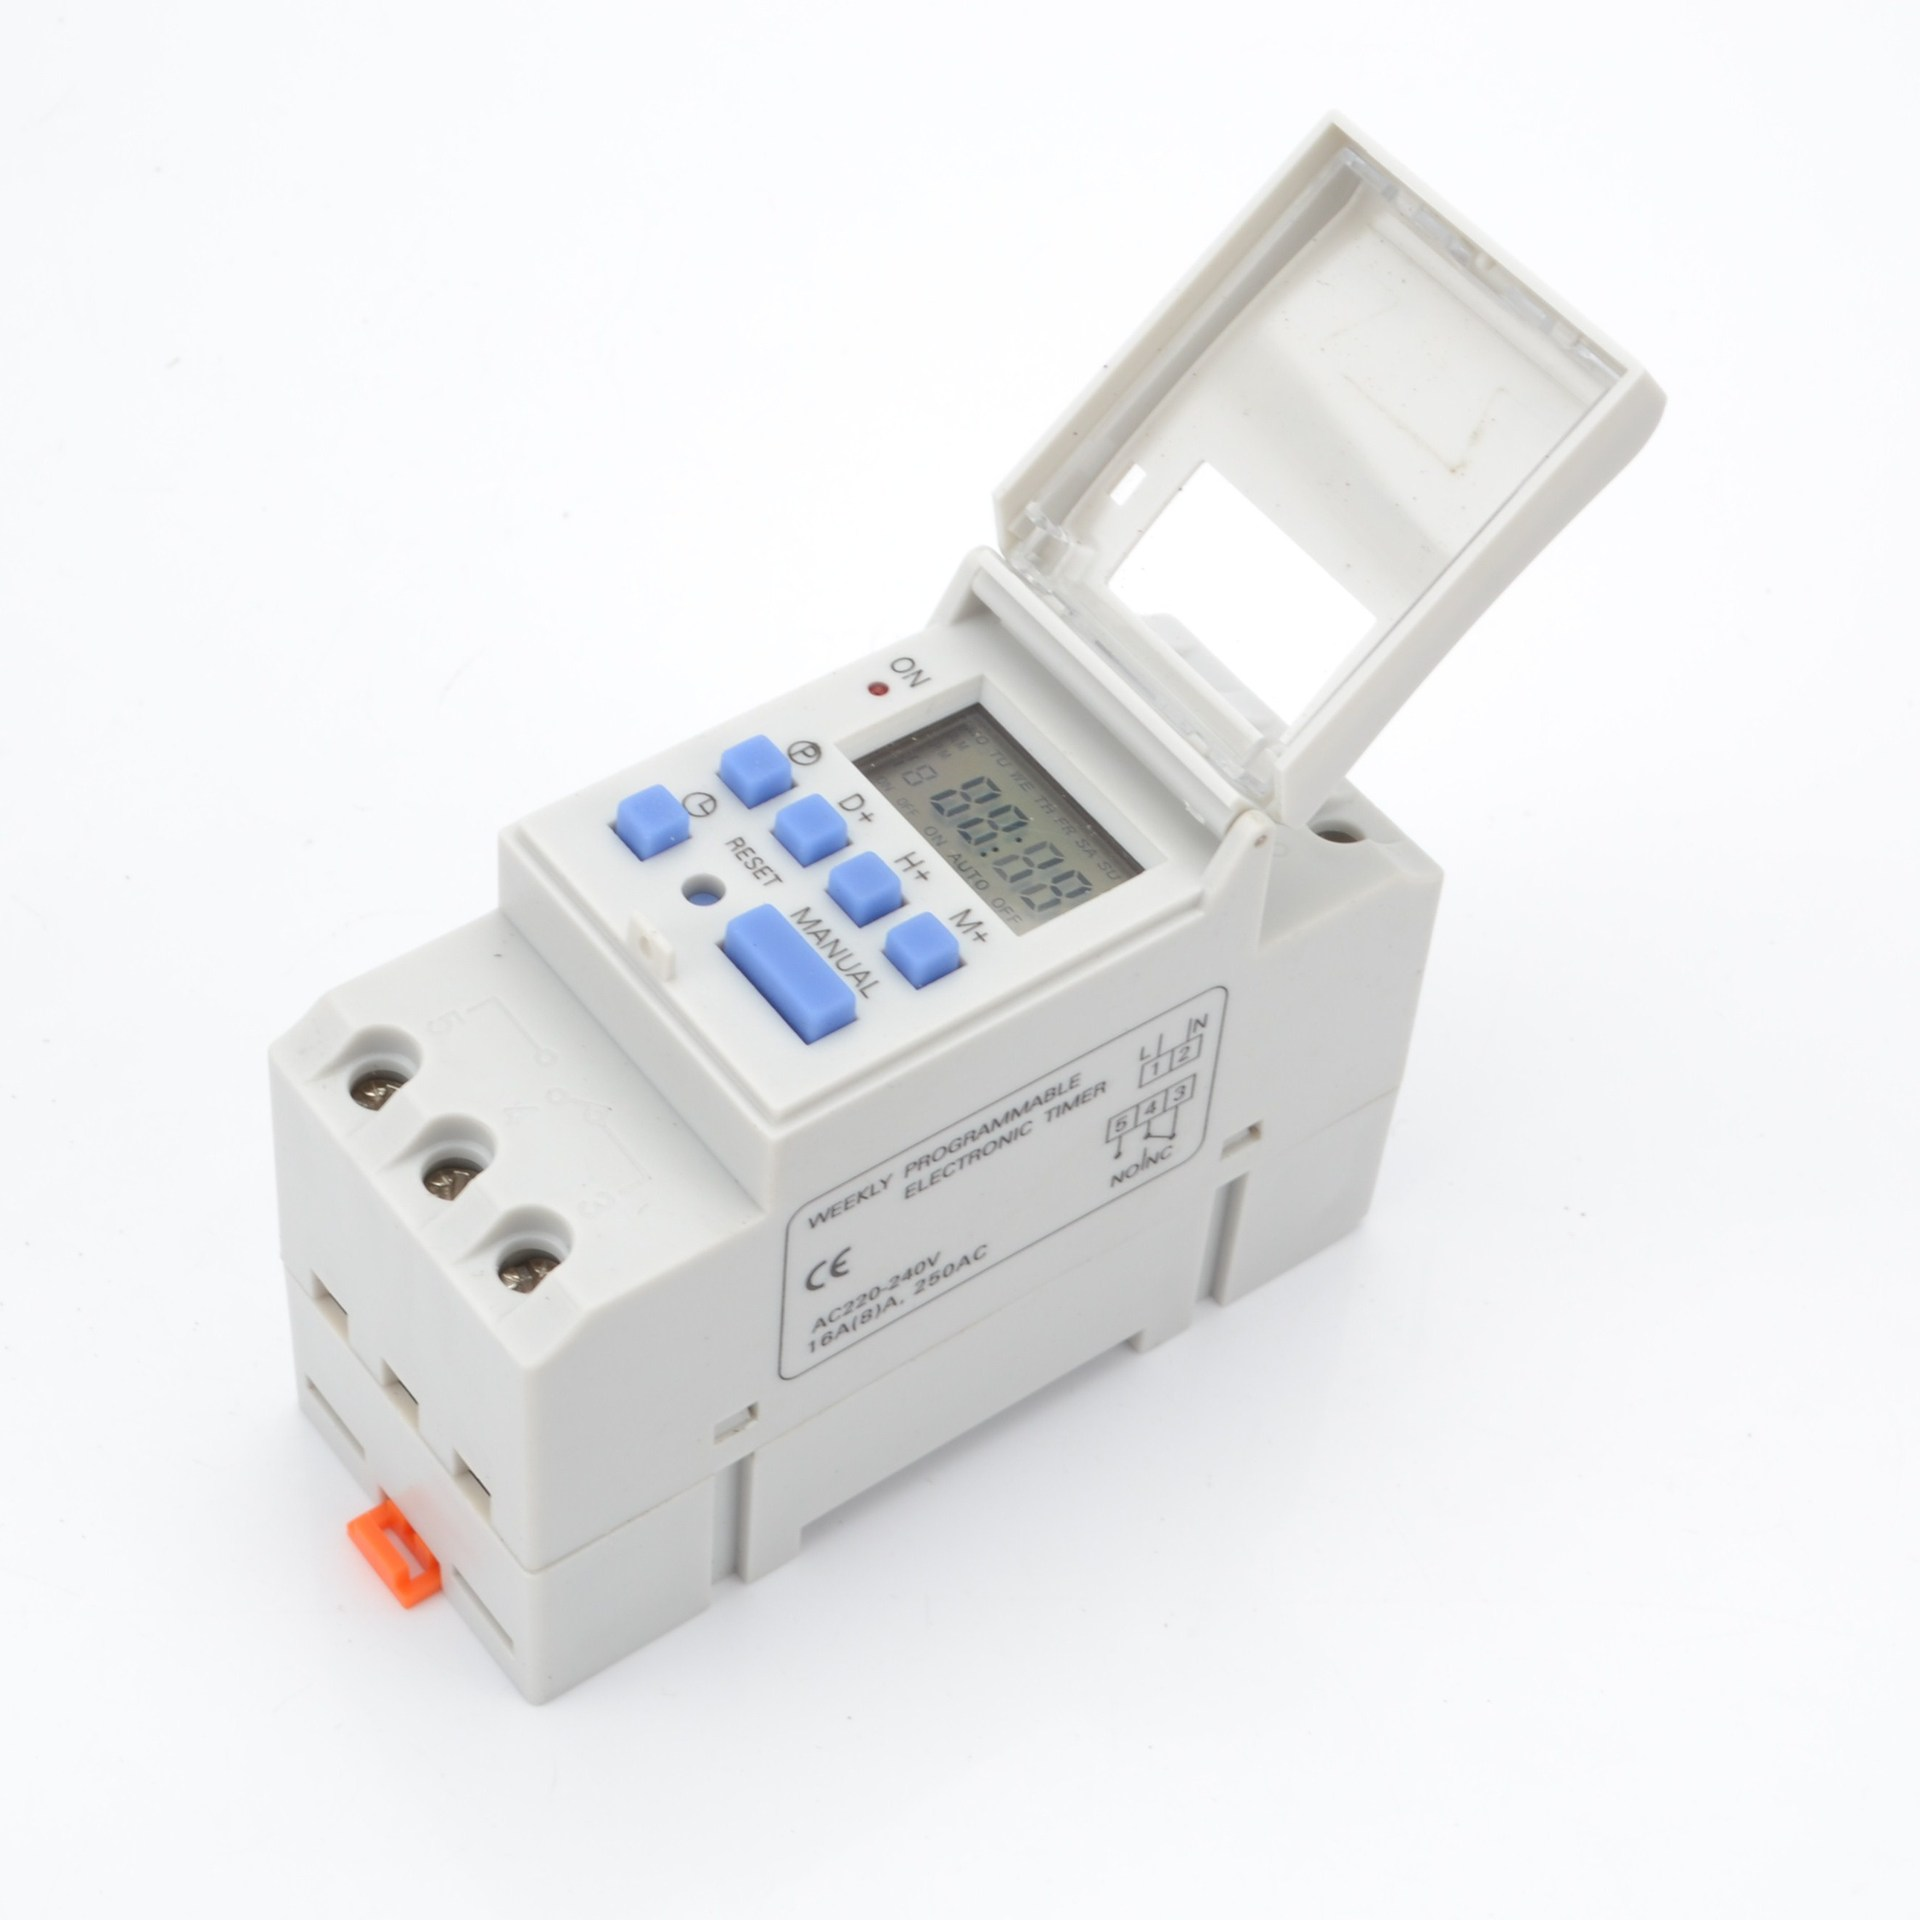 1pc Time Switch 220V 16A Microcomputer Electronic Programmable Digital Timer Switch Relay Control Switch Din Rail Mount chint nkg3 nkg 3 lcd microcomputer astro time switch sunrise sunset based on latitude din rail digital programmable timer relay